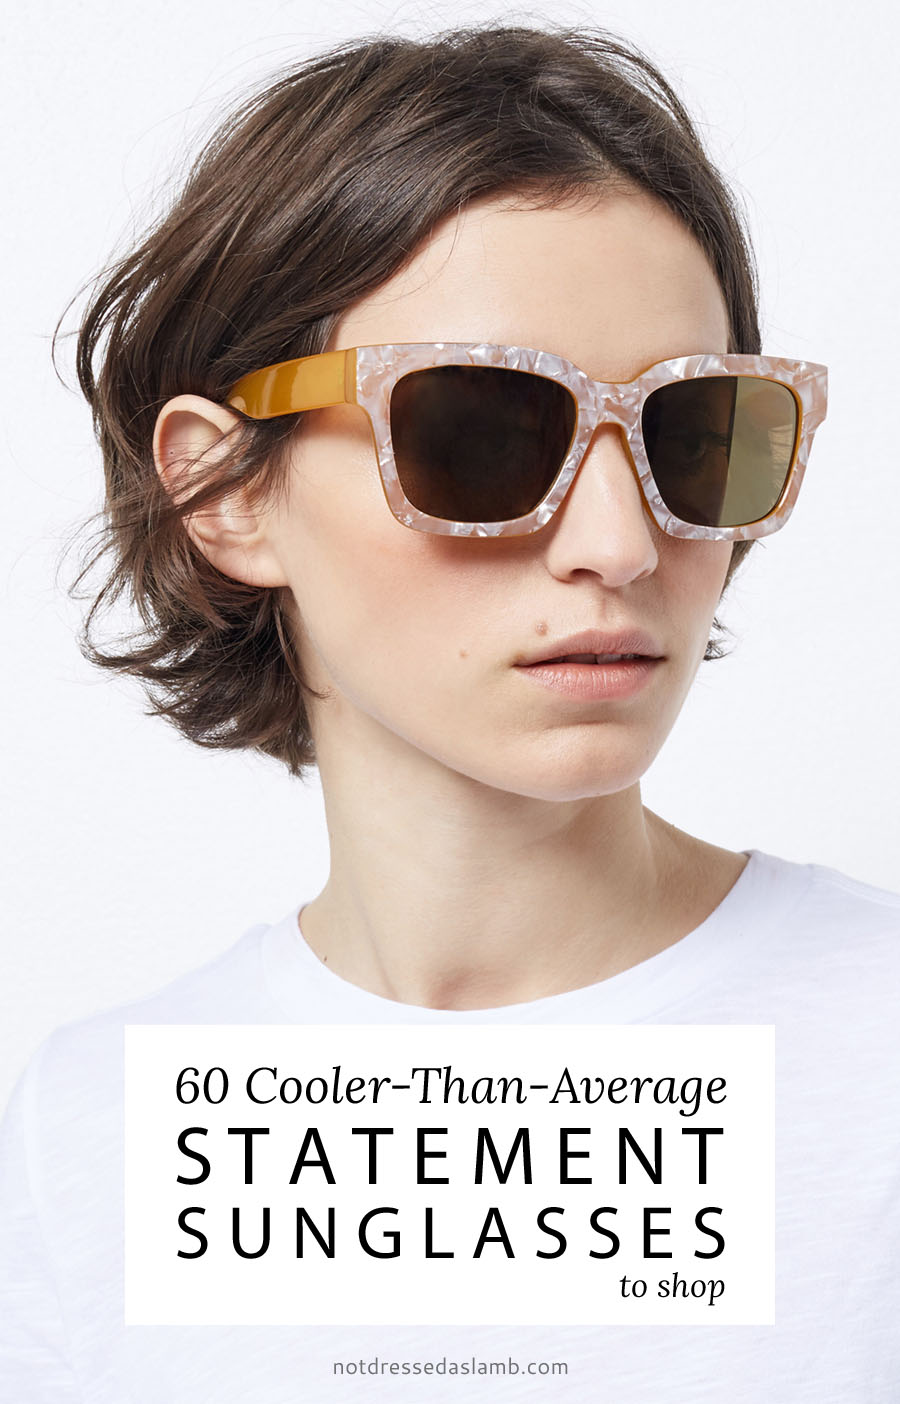 60 Pairs of Cooler-Than-Average Statement Sunglasses to Shop (Warehouse pearl-frame yellow sunglasses)